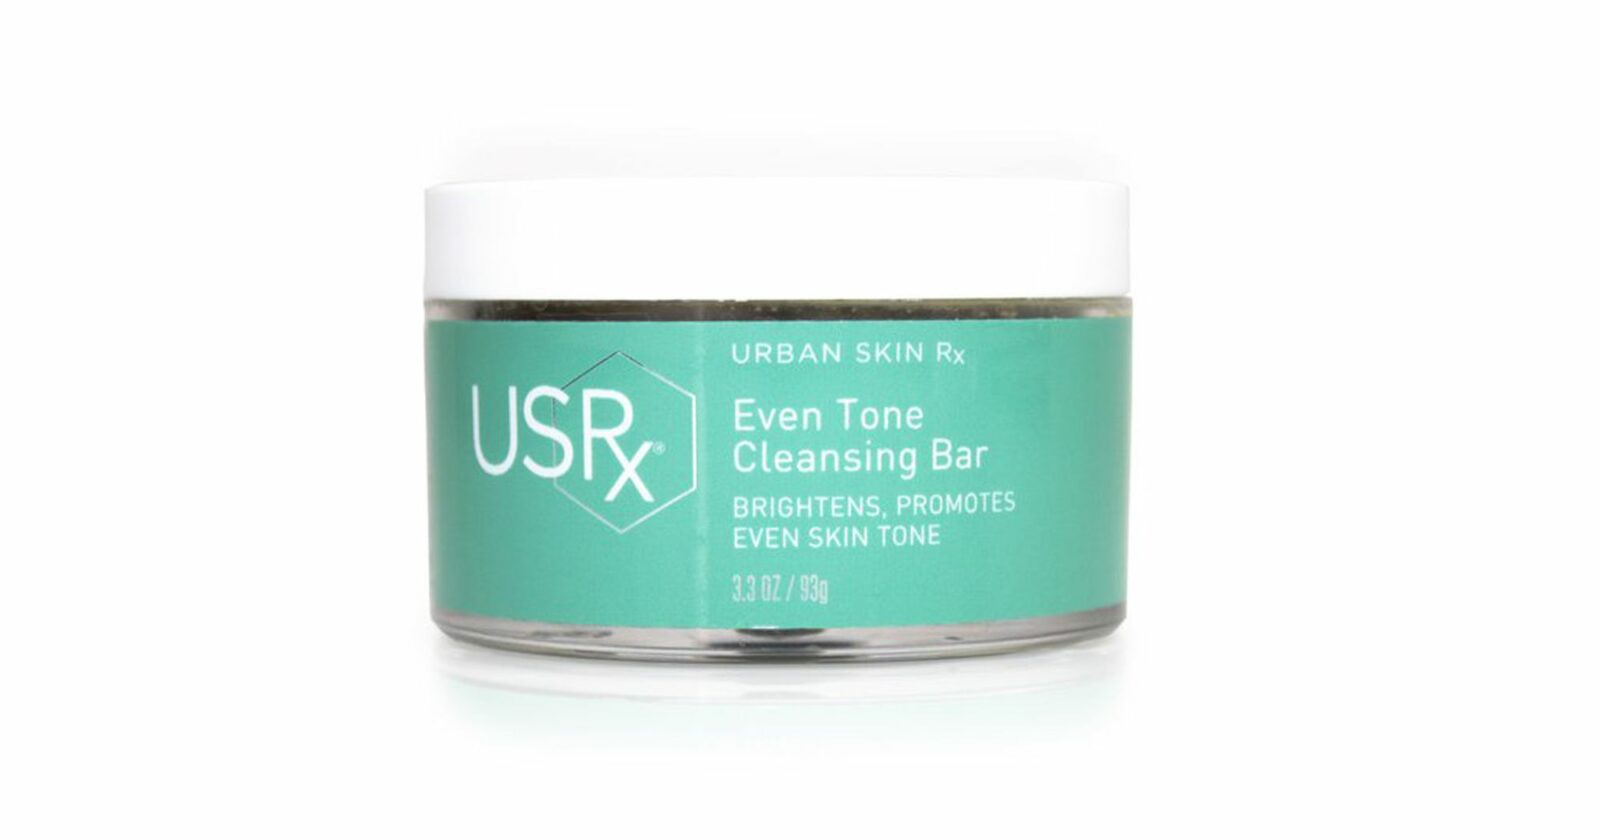 Even Tone Cleansing Bar by Urban Skin Rx #19